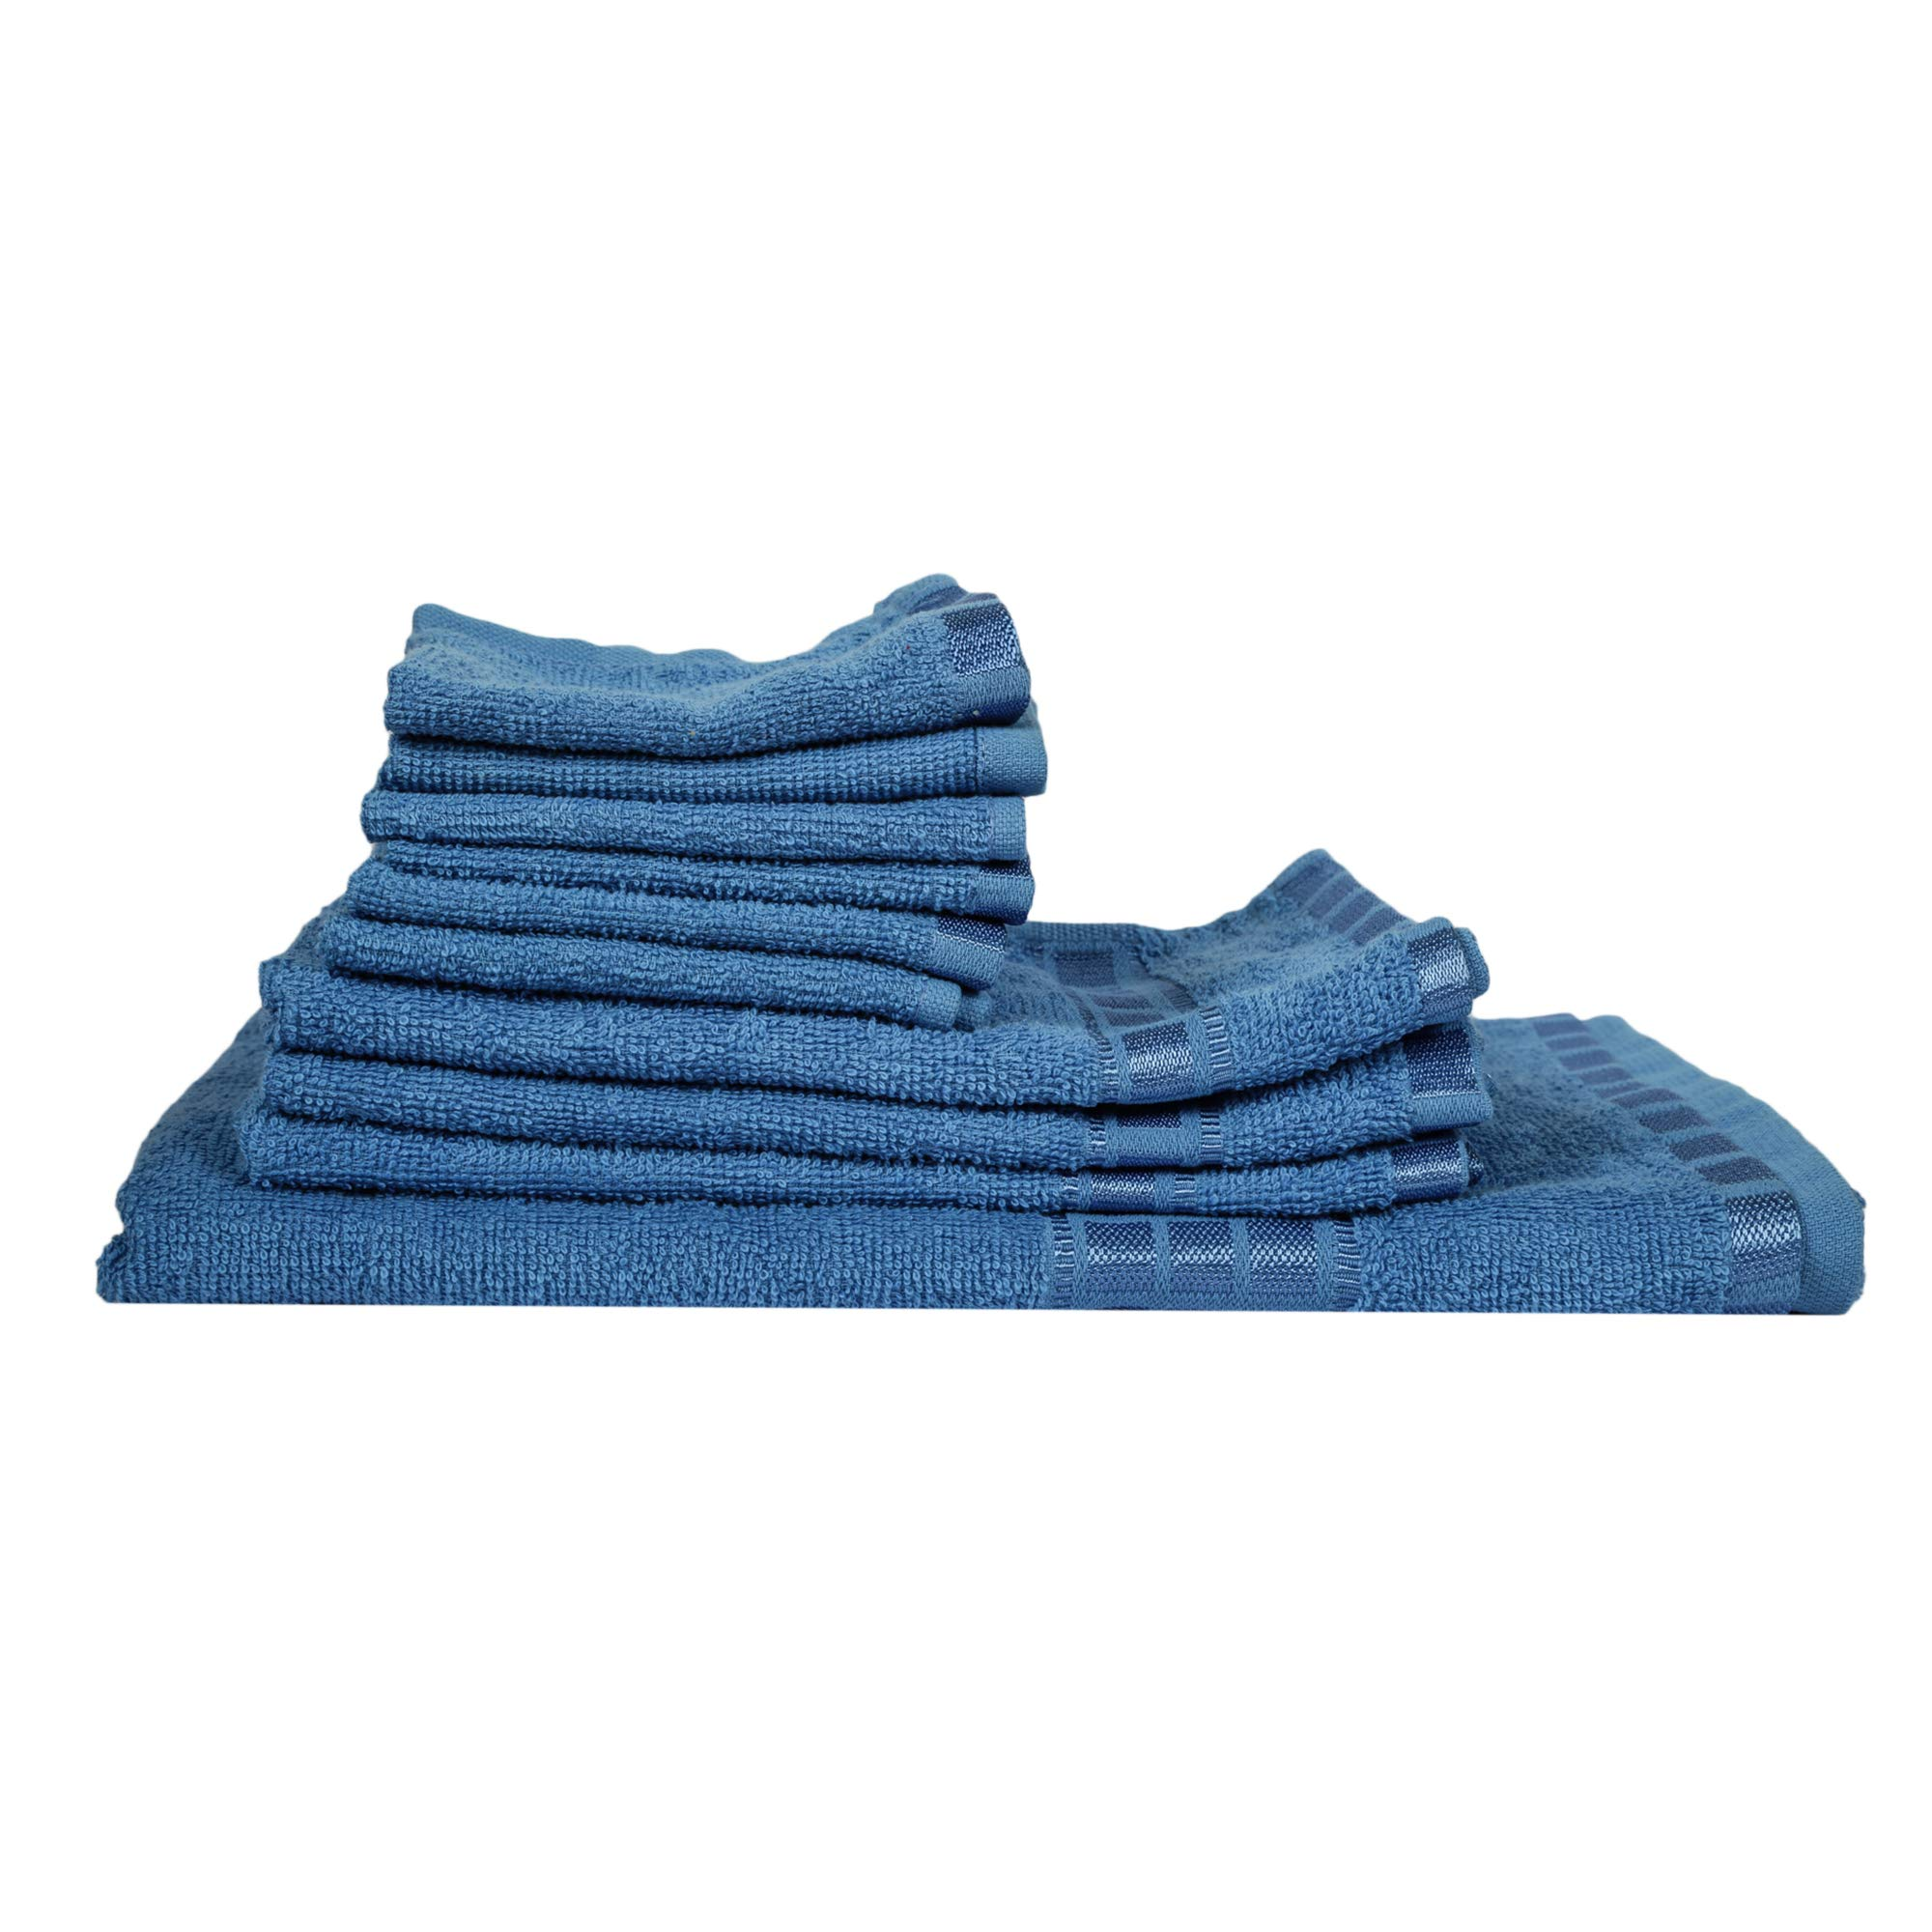 Eurospa Set of 10 Cotton Bath + Hand + Face Towel Set Blue (SPDHFCB171BLM10)